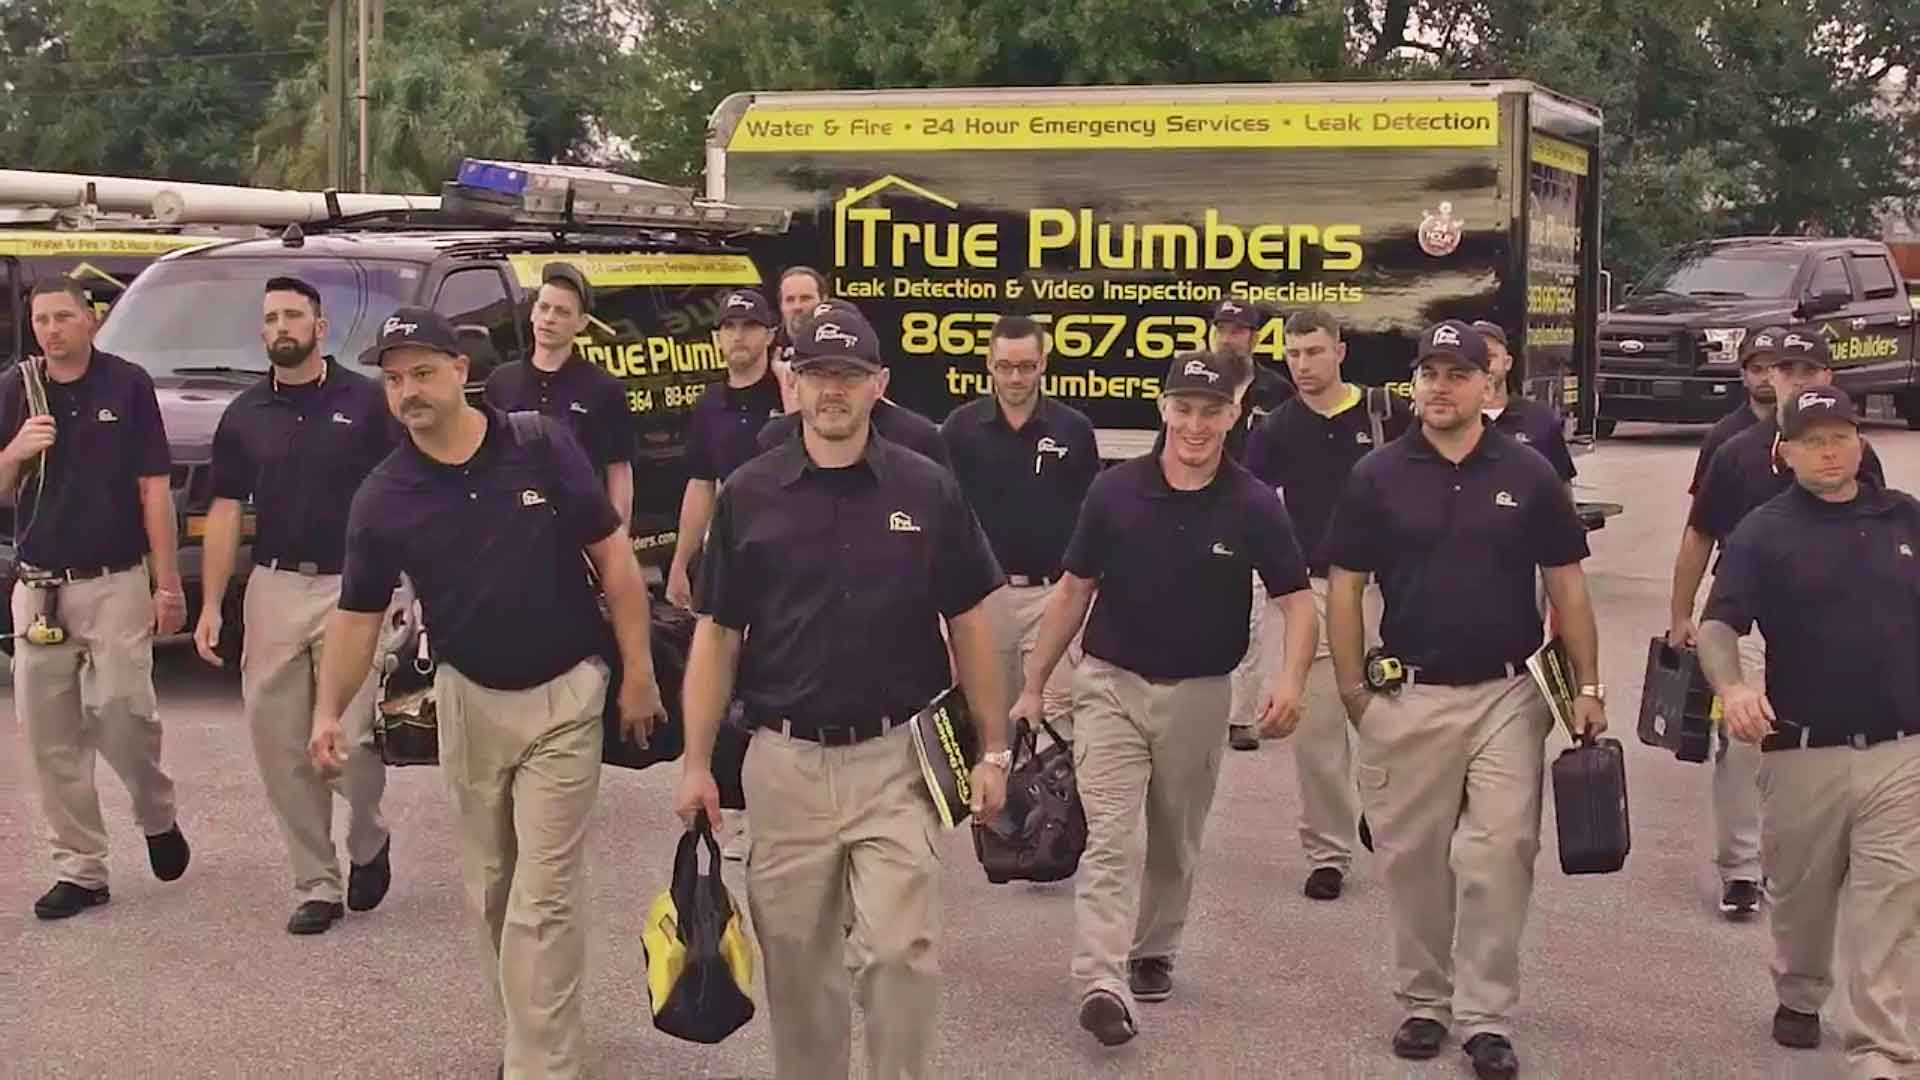 Plumbing crew serving Winter Haven, FL.